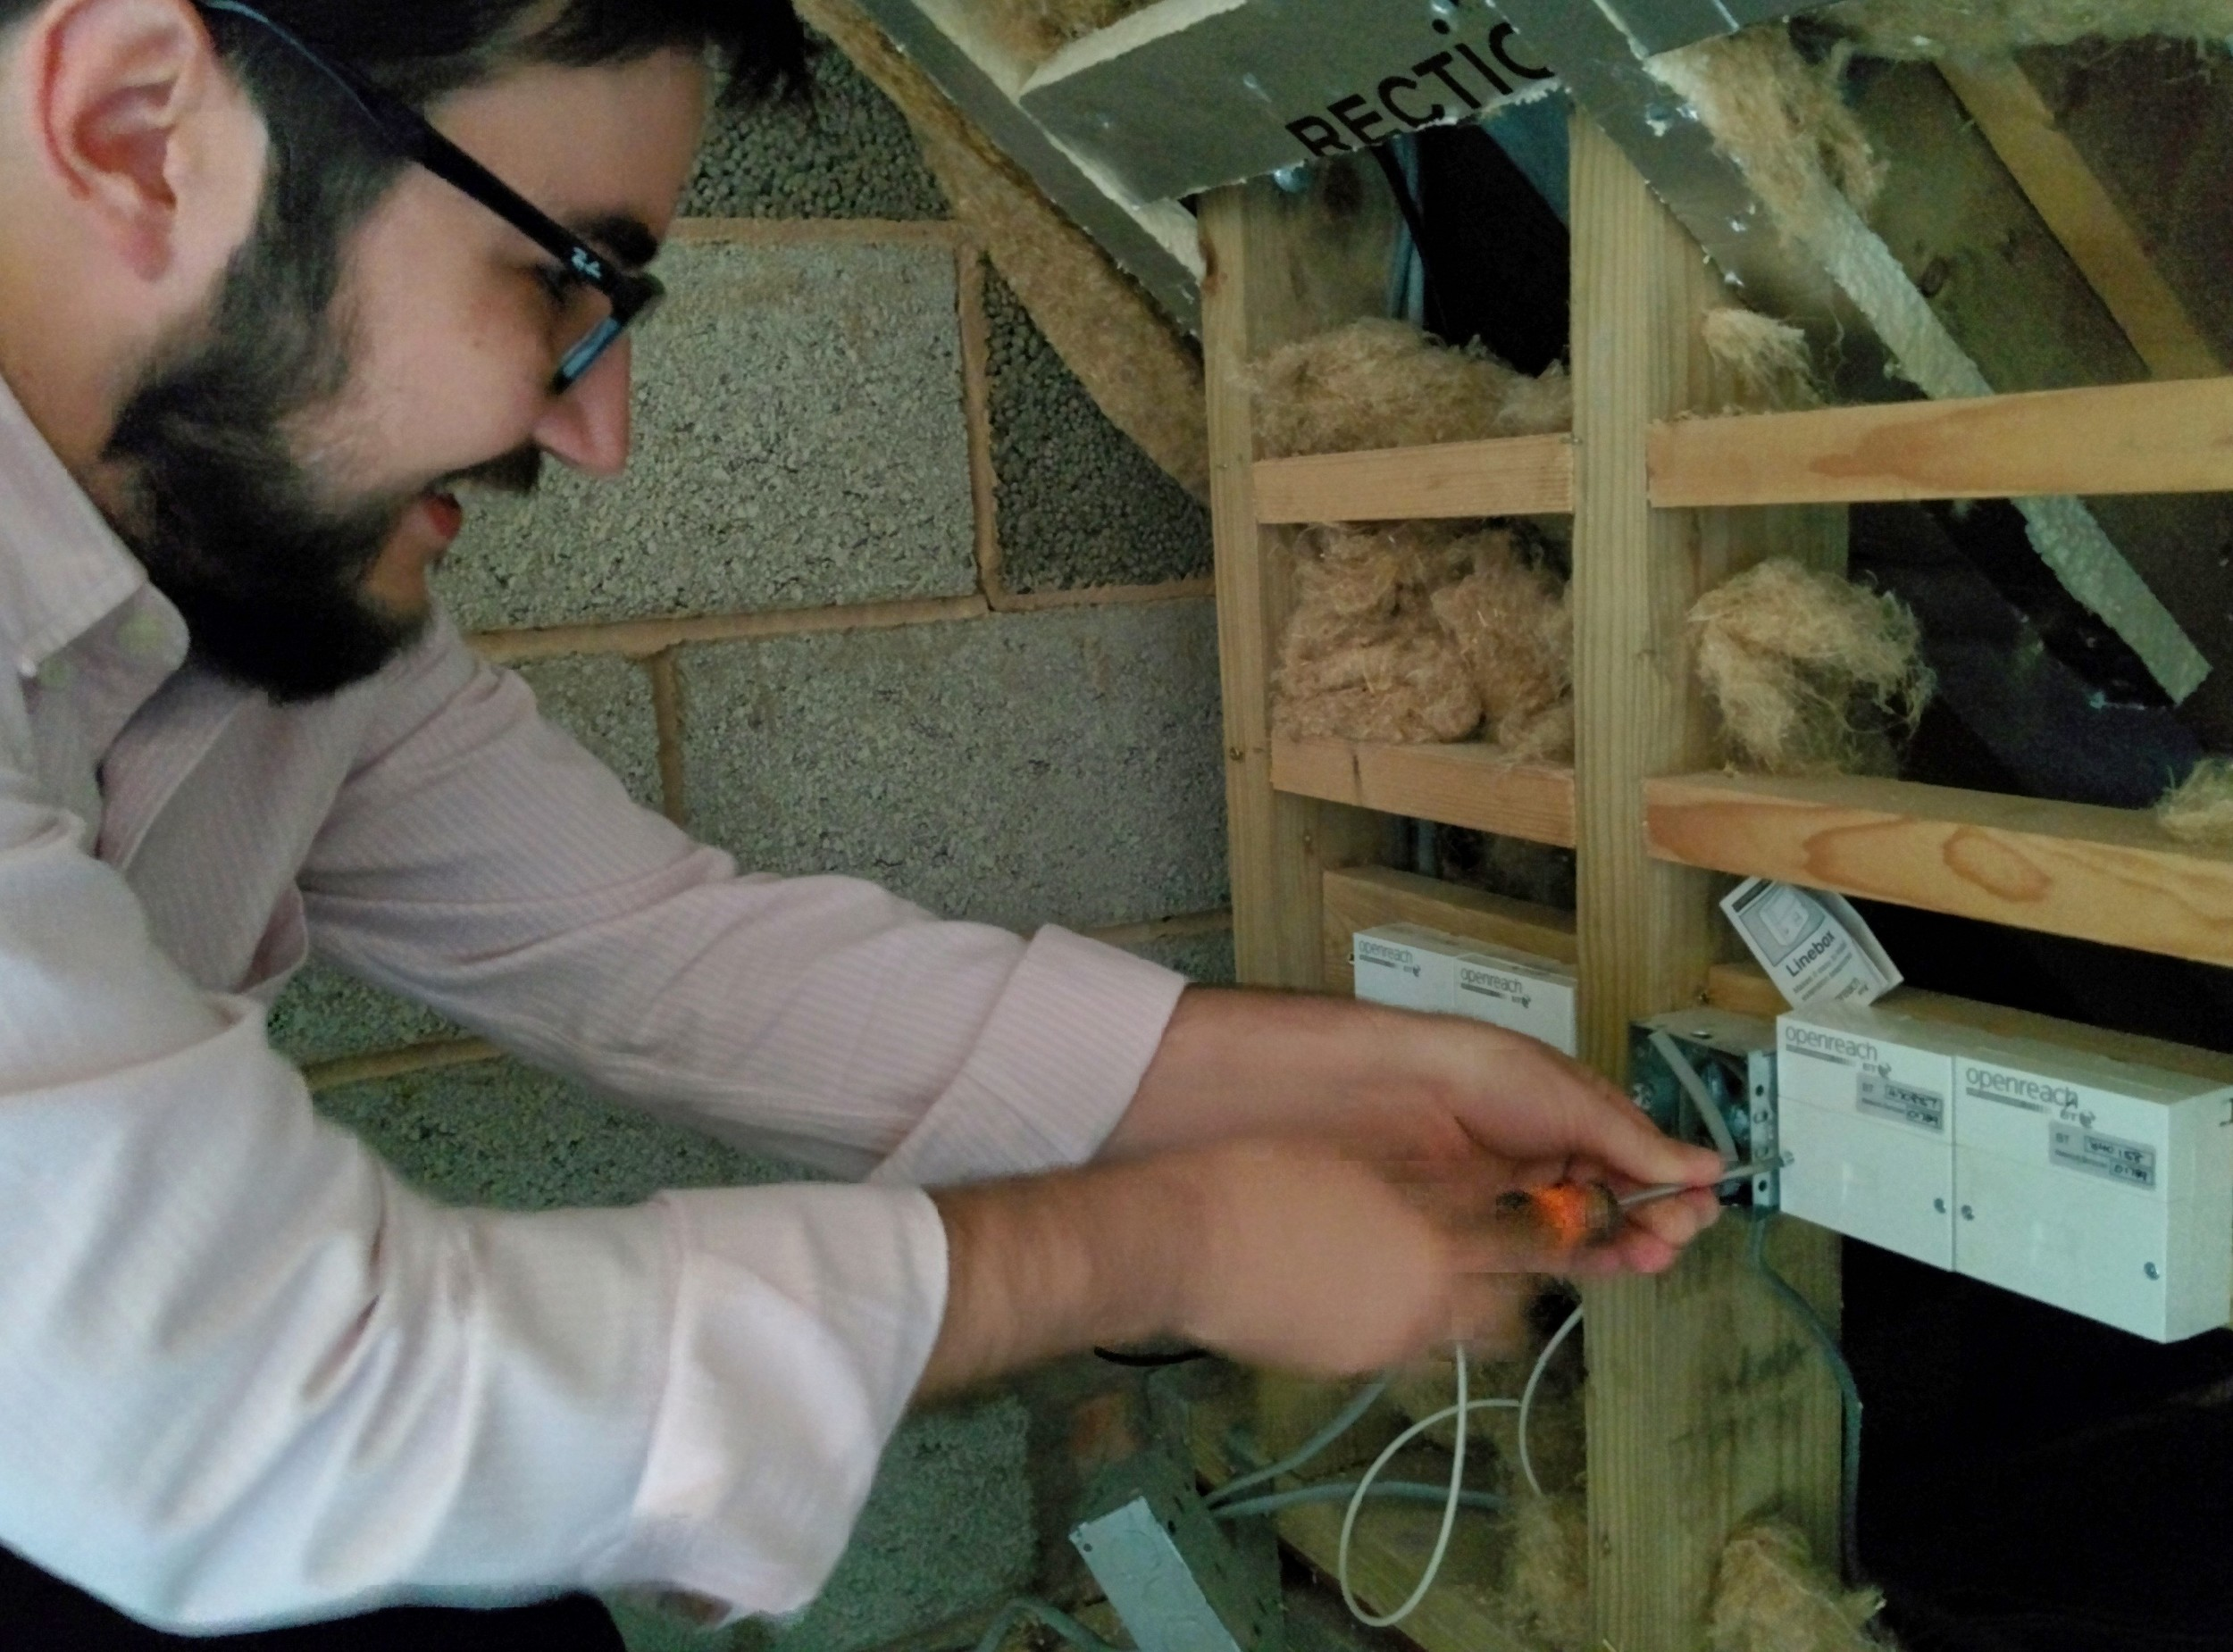 William installing a broadband and VoIP connection at a business based in London.